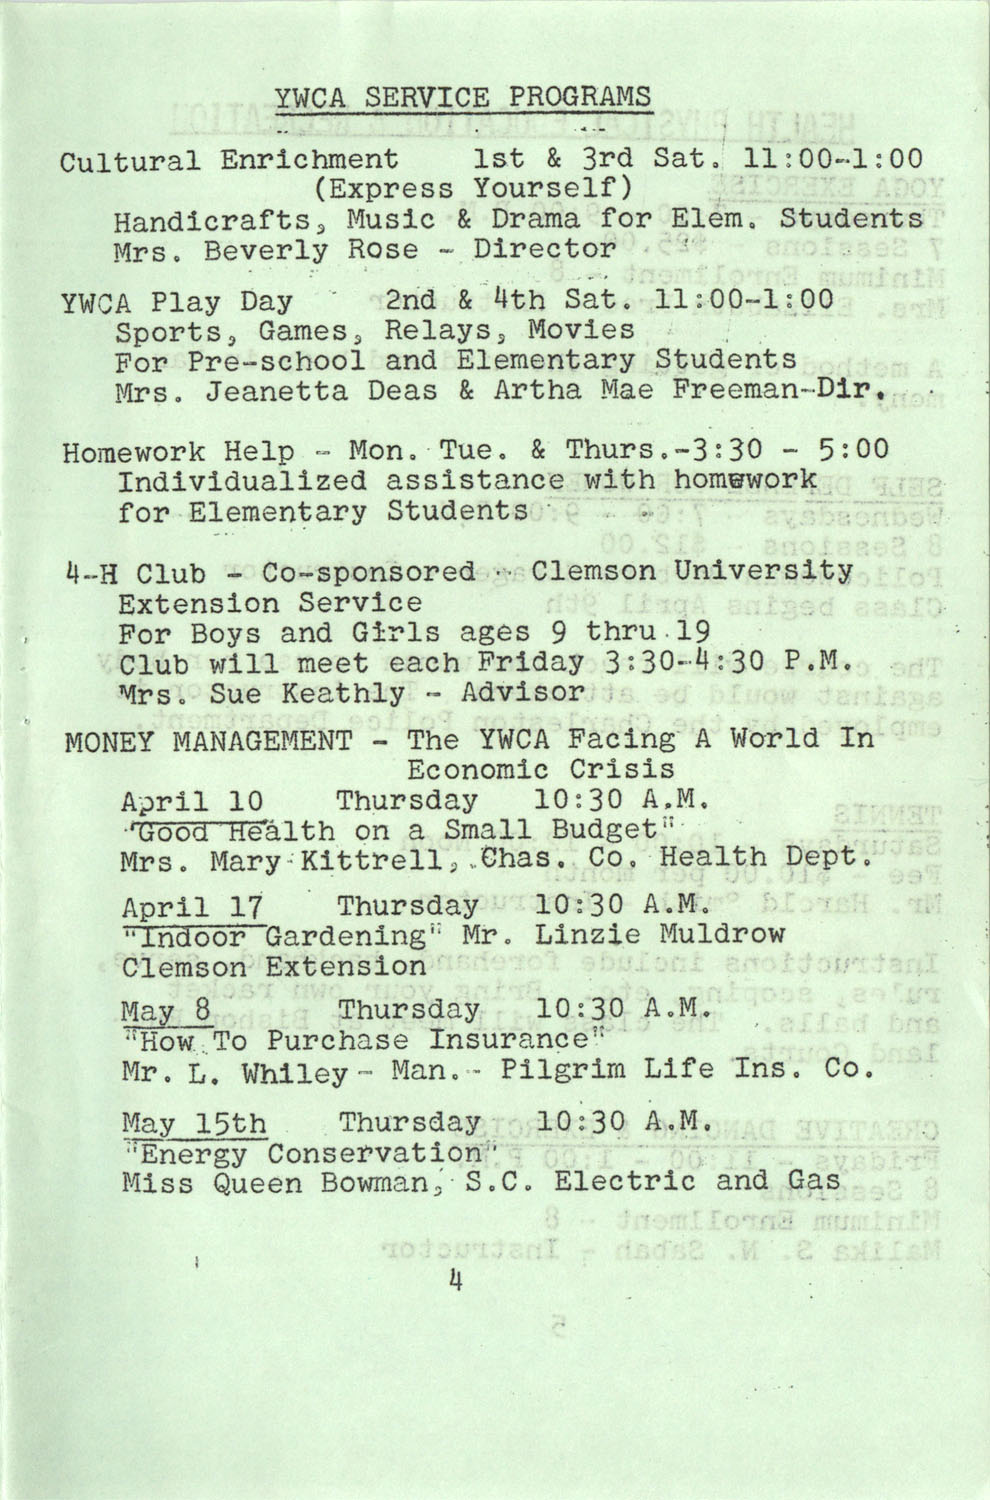 YWCA Spring 1975 Schedule, Page 4